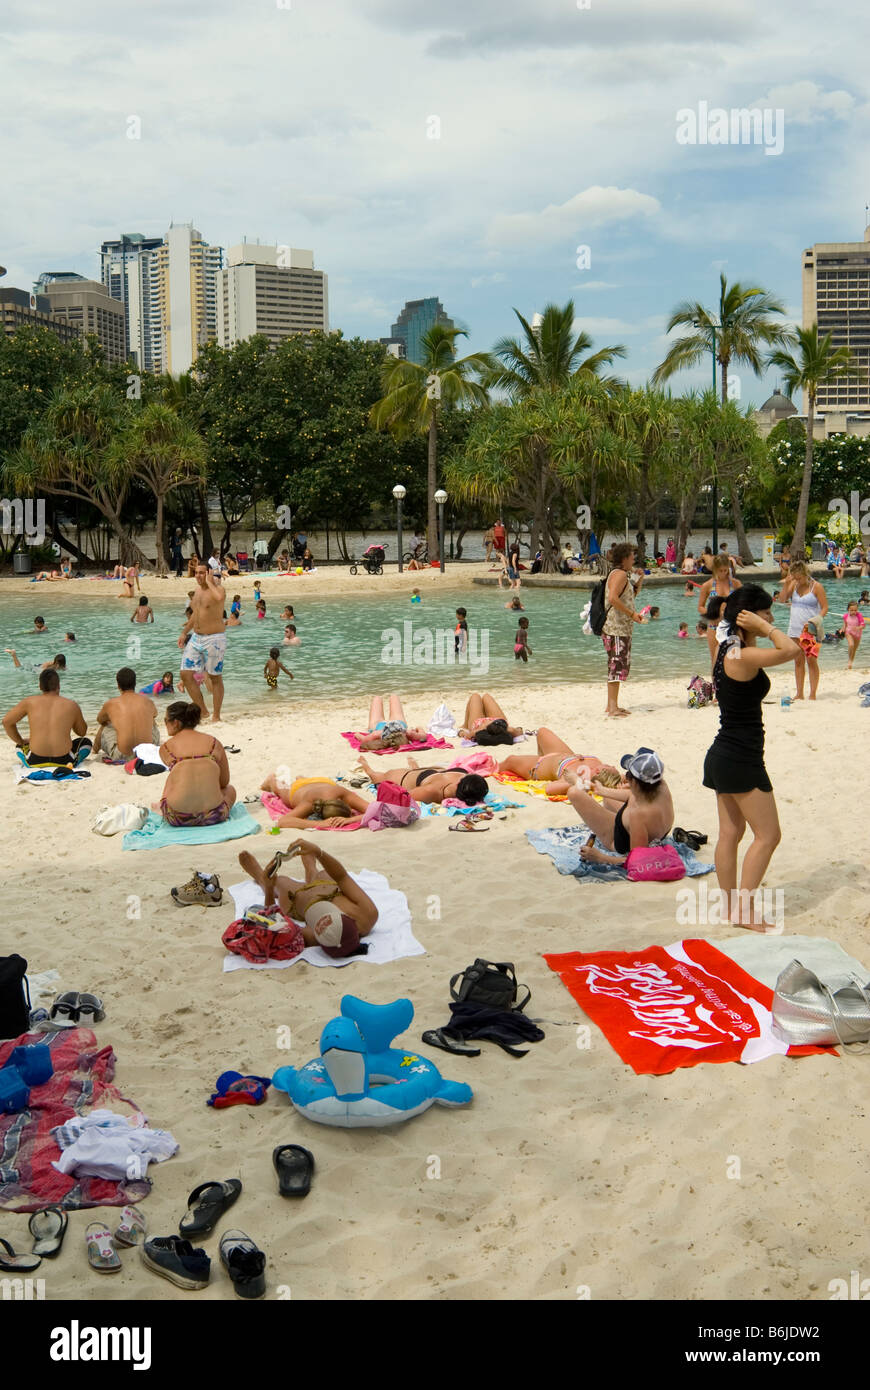 Families relaxing at the man-made Streets Beach, Brisbane, Australia - Stock Image